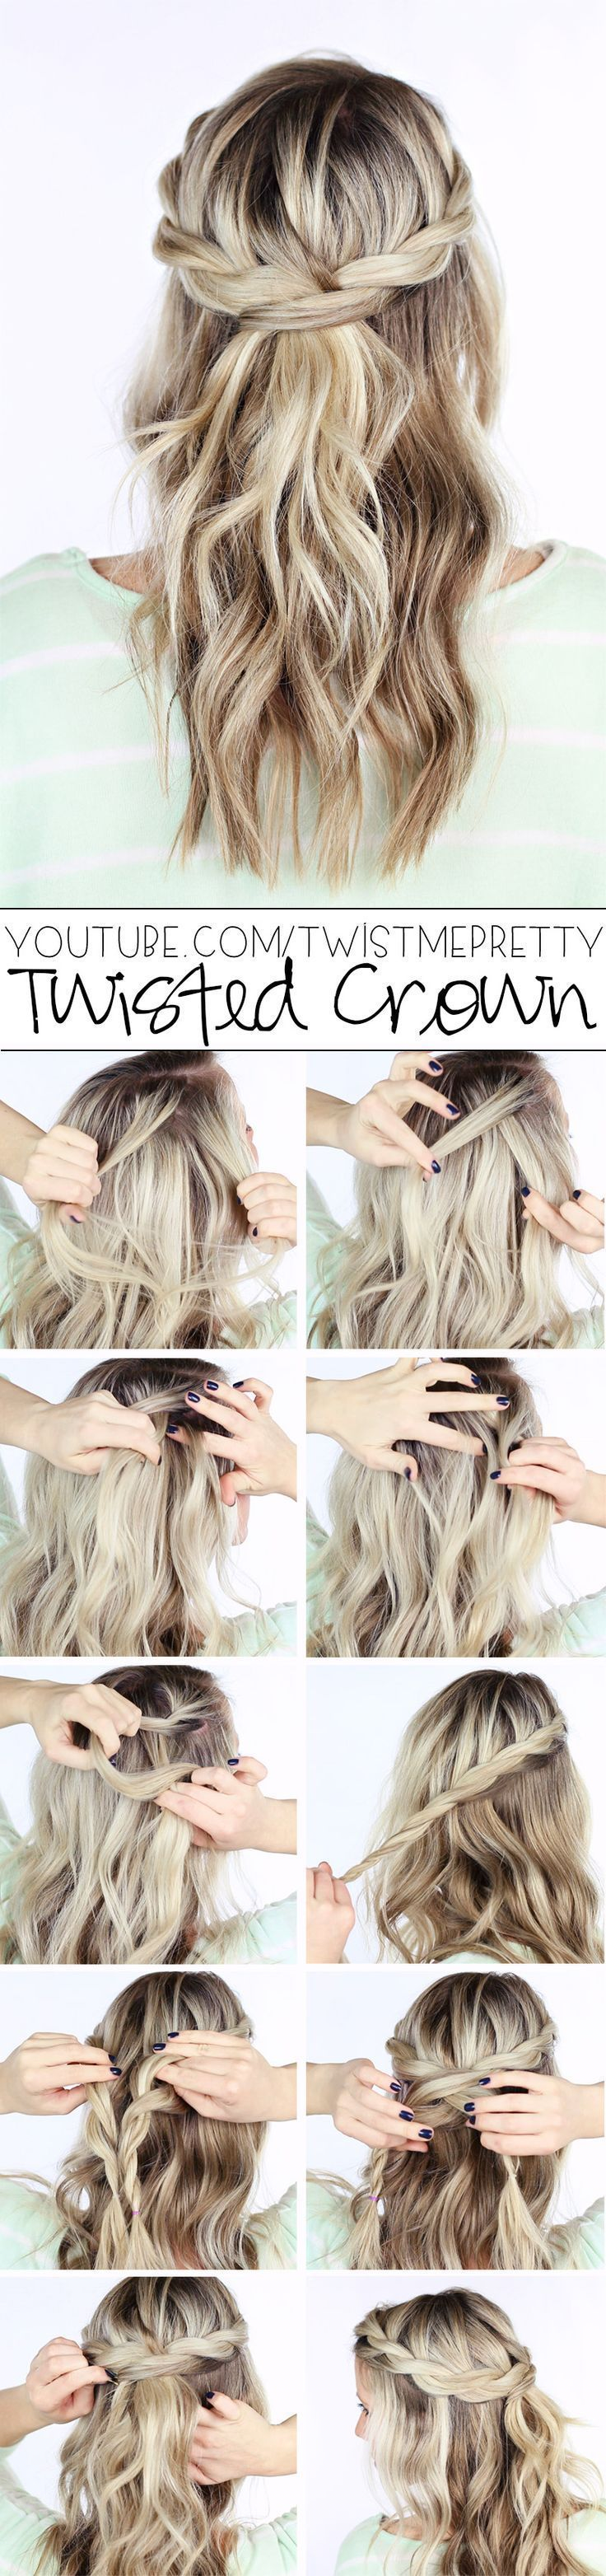 diy wedding hairstyle – twisted crown braid half up half